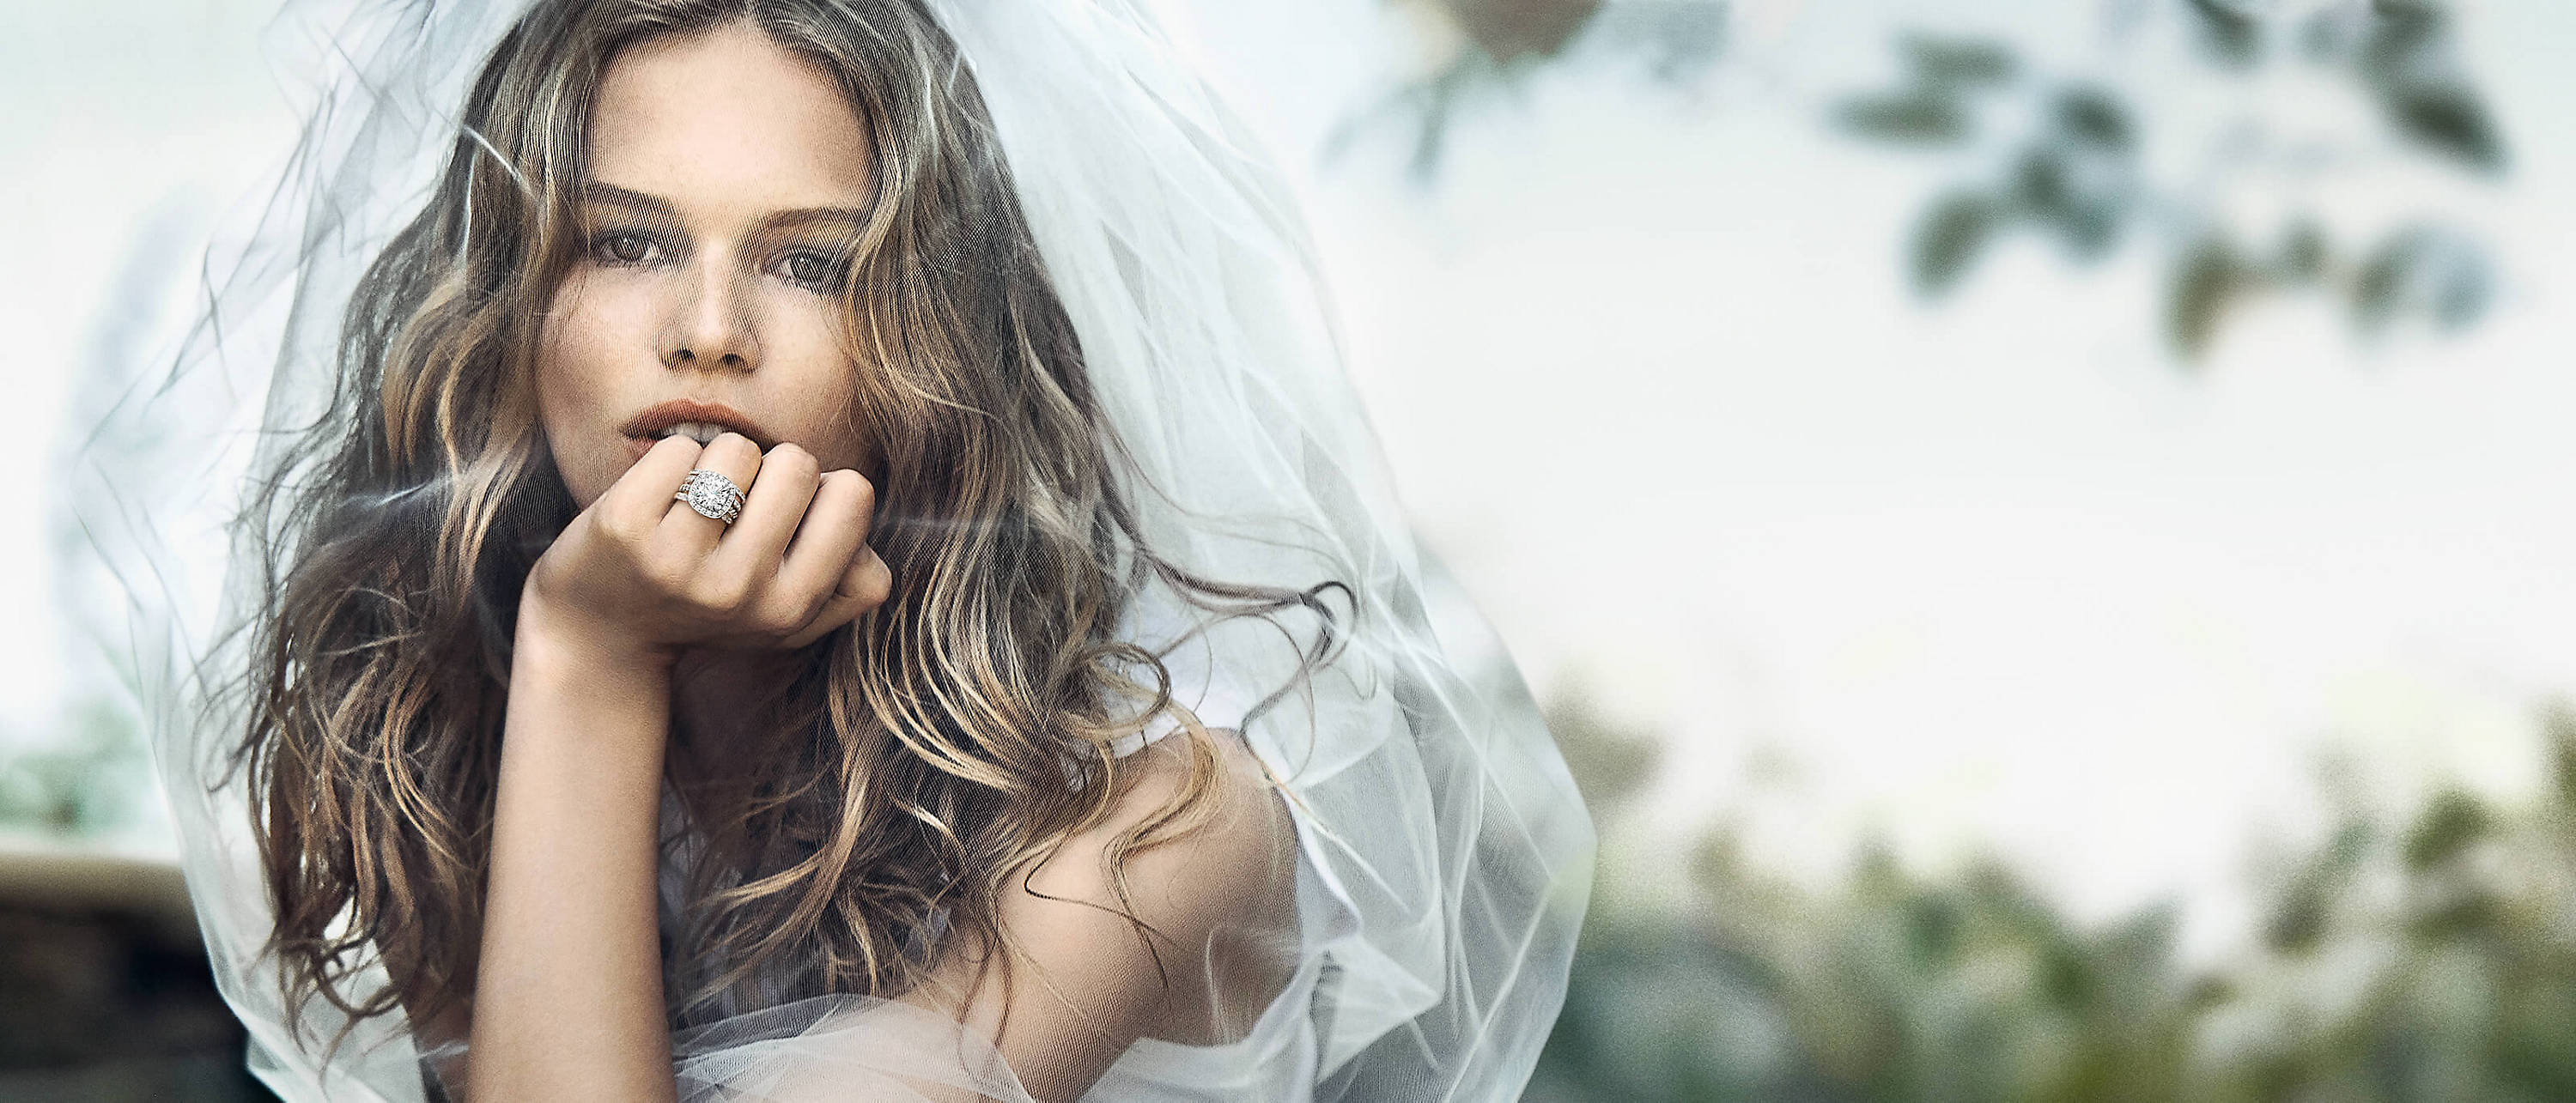 A color photo of model Anna Ewers sitting in a forest wearing a white veil, David Yurman diamond wedding bands and an engagement ring, a white tank top and ripped jeans.